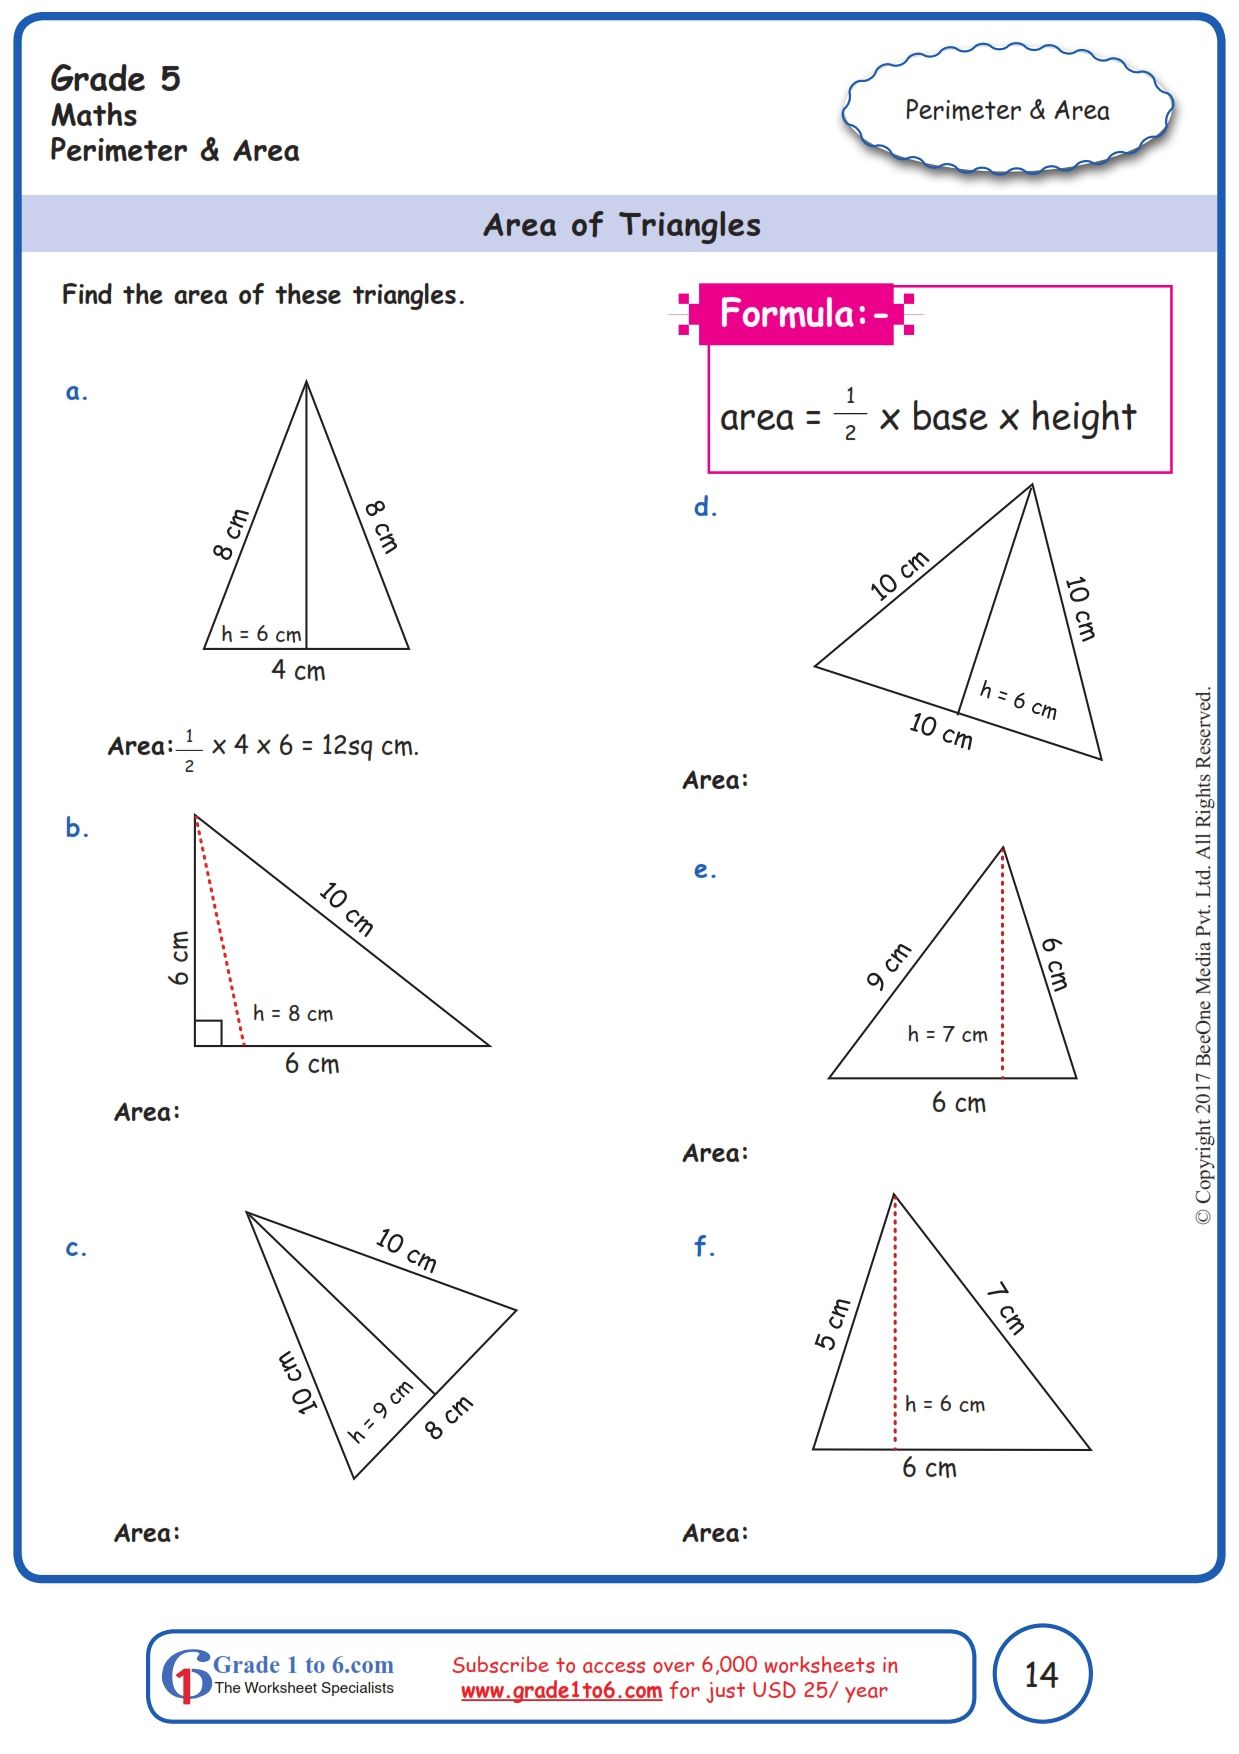 hight resolution of 6th Grade Math Area Of Triangle Worksheets   Printable Worksheets and  Activities for Teachers